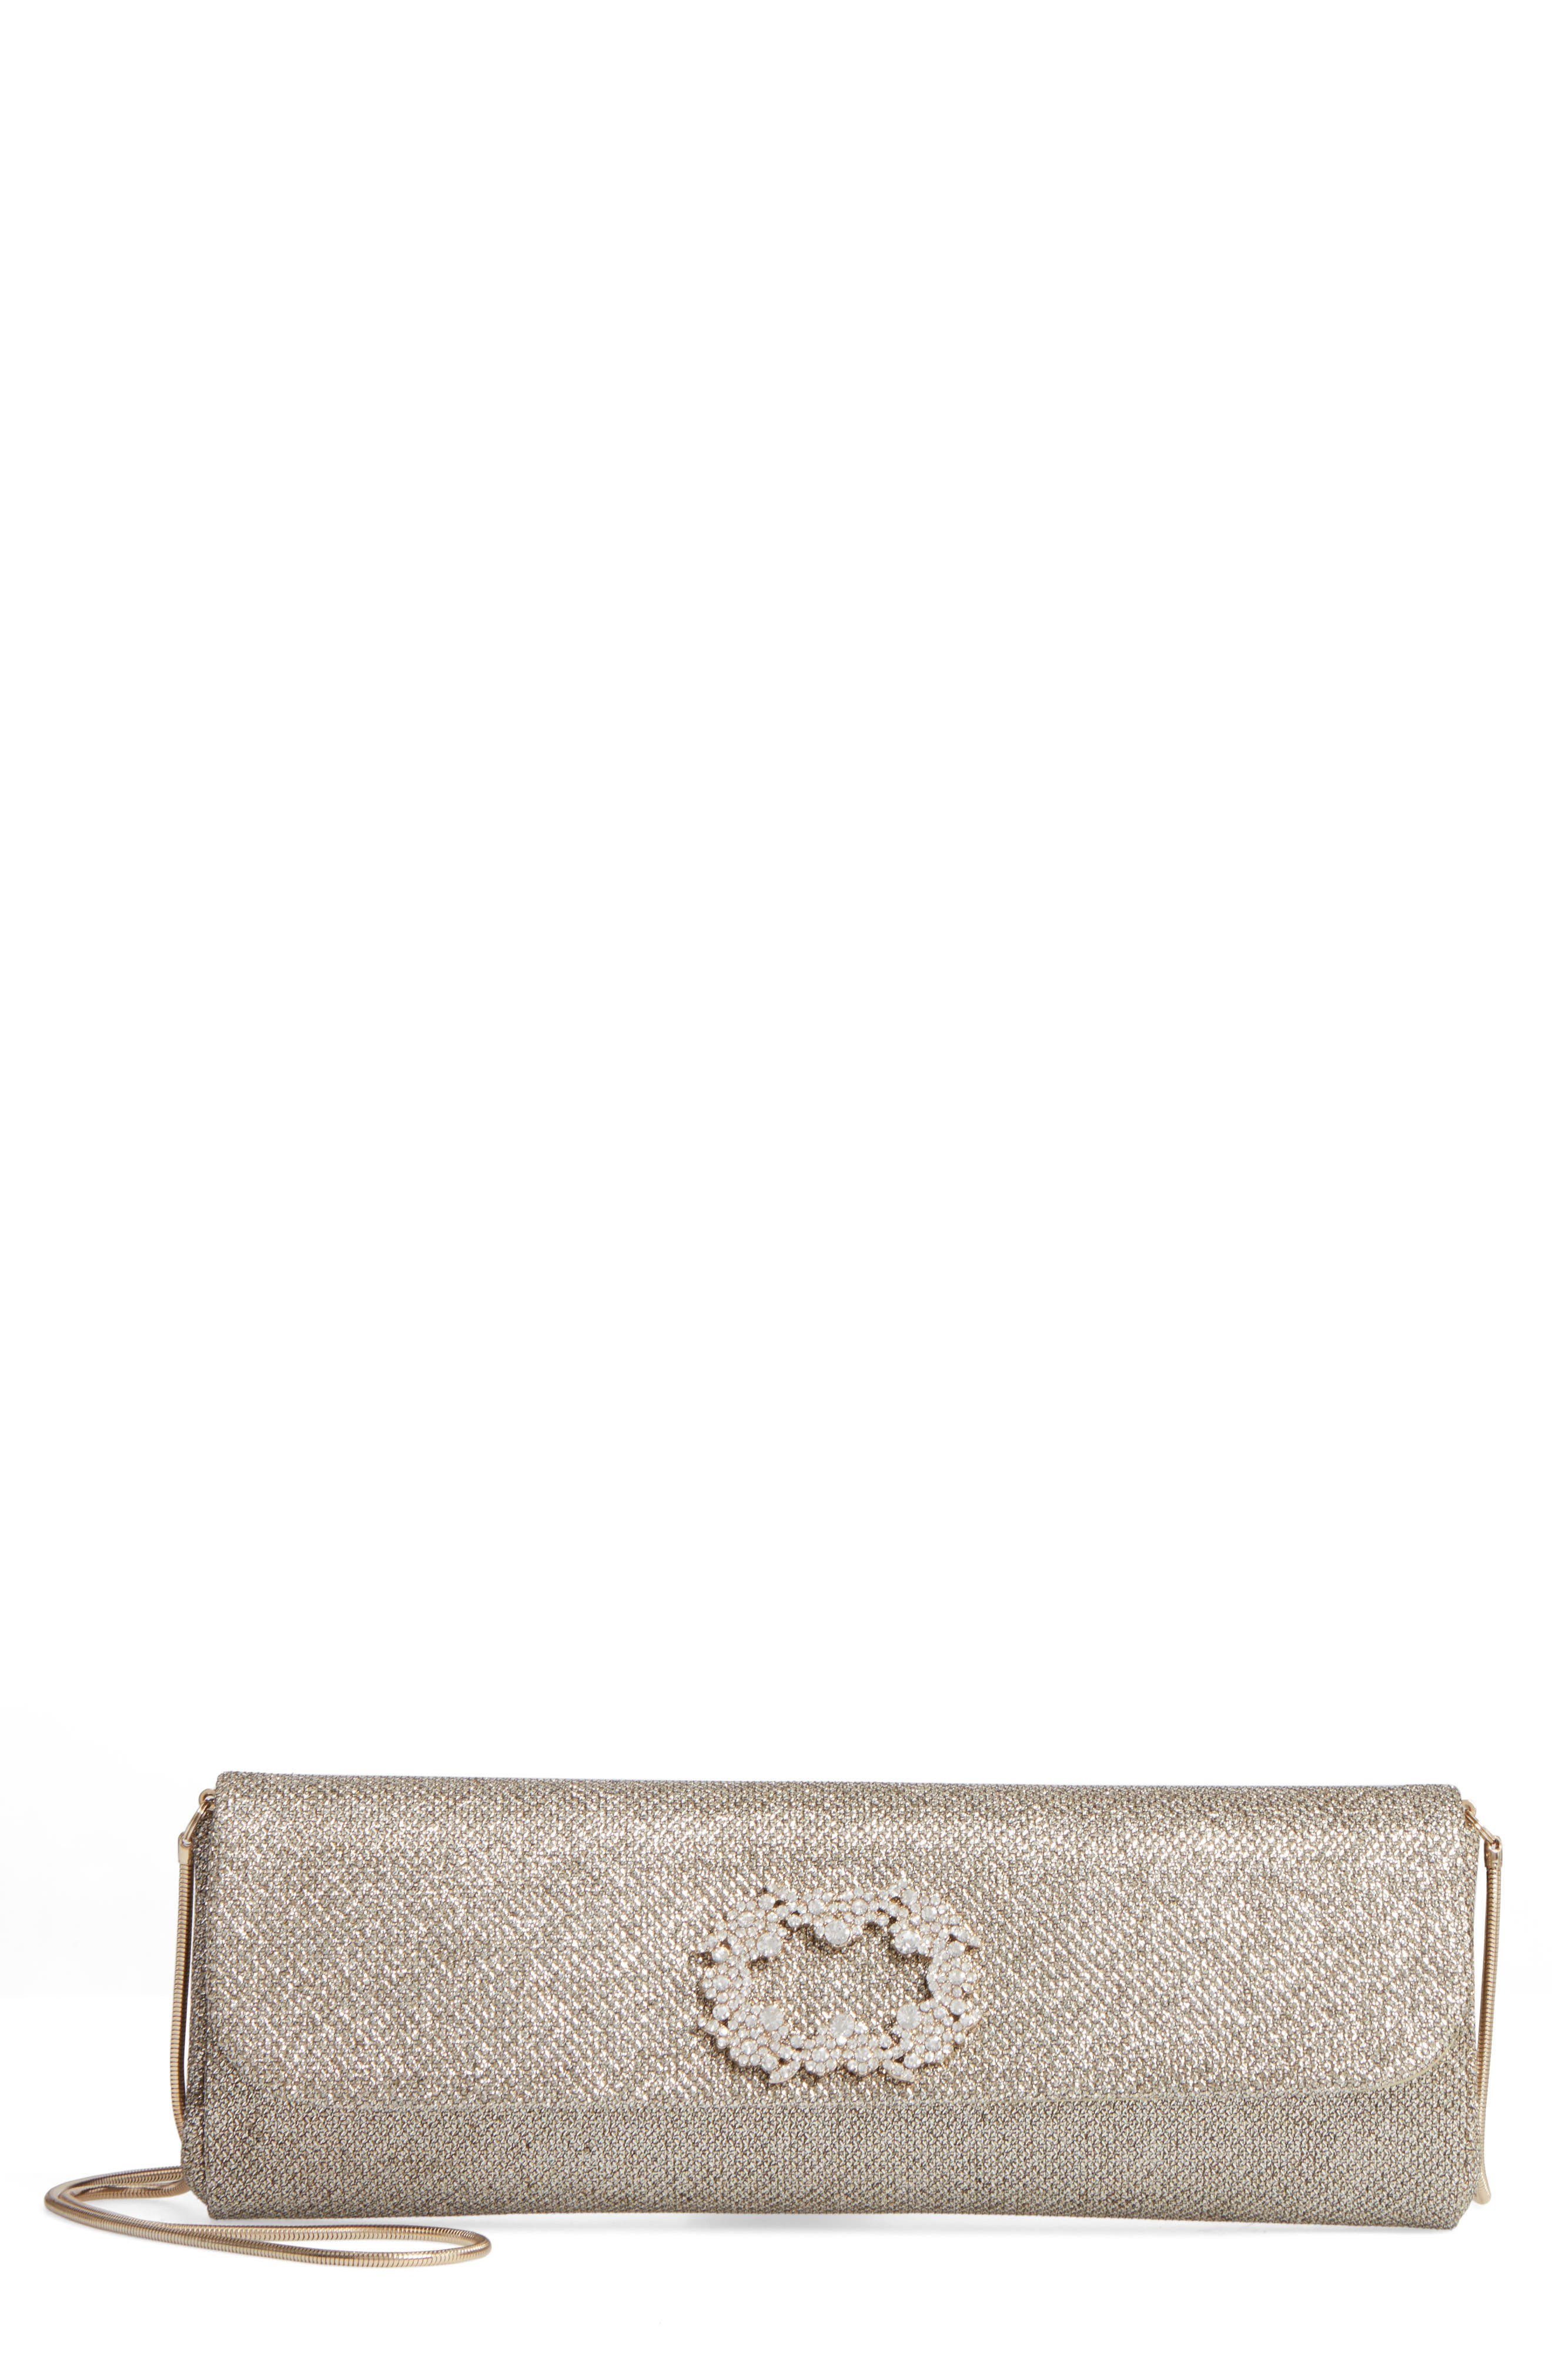 Badgley Mischka Delicate Mesh Clutch